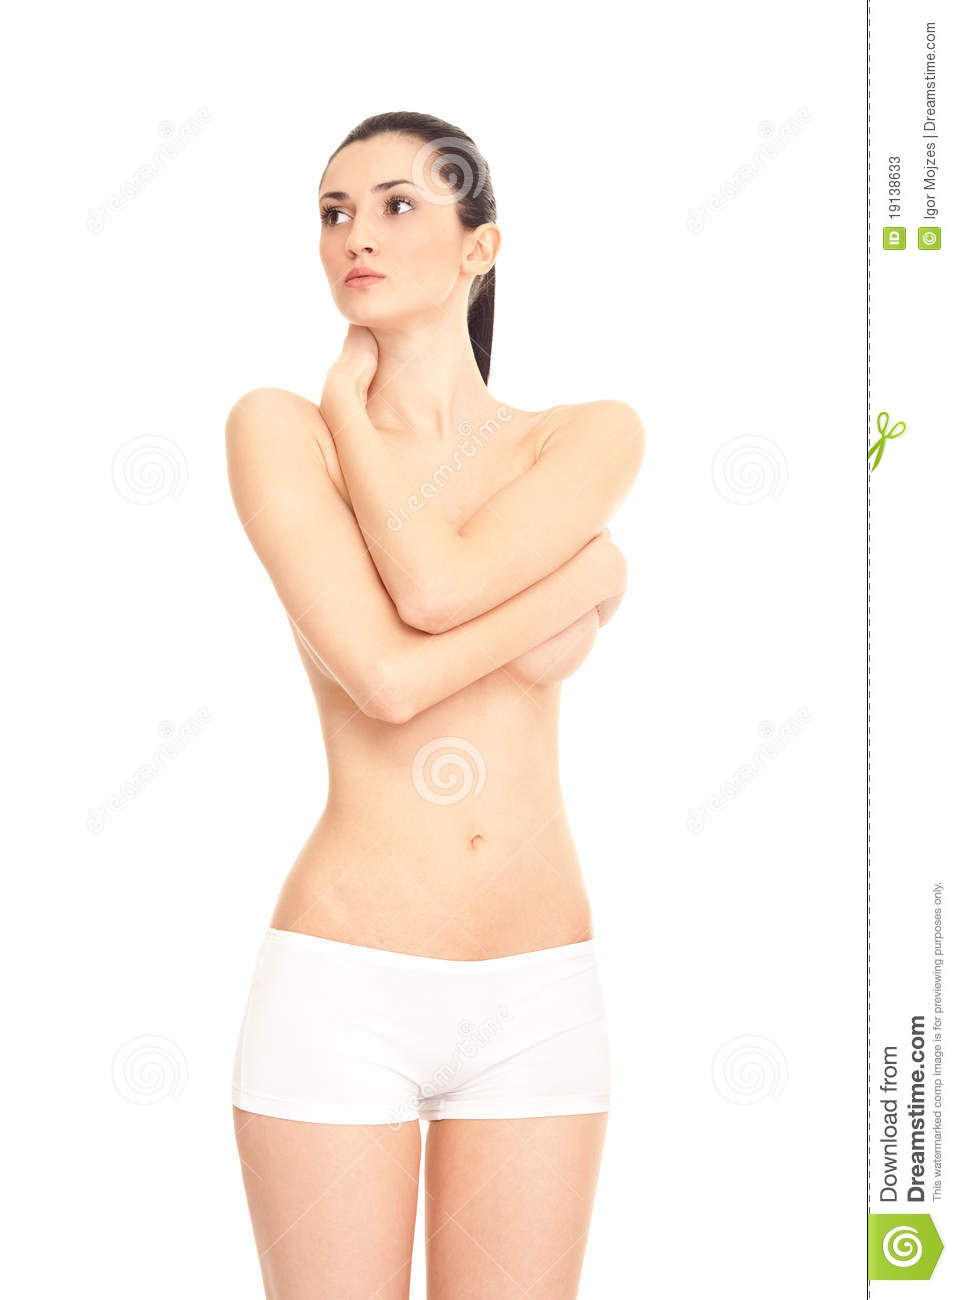 Naked woman relaxing